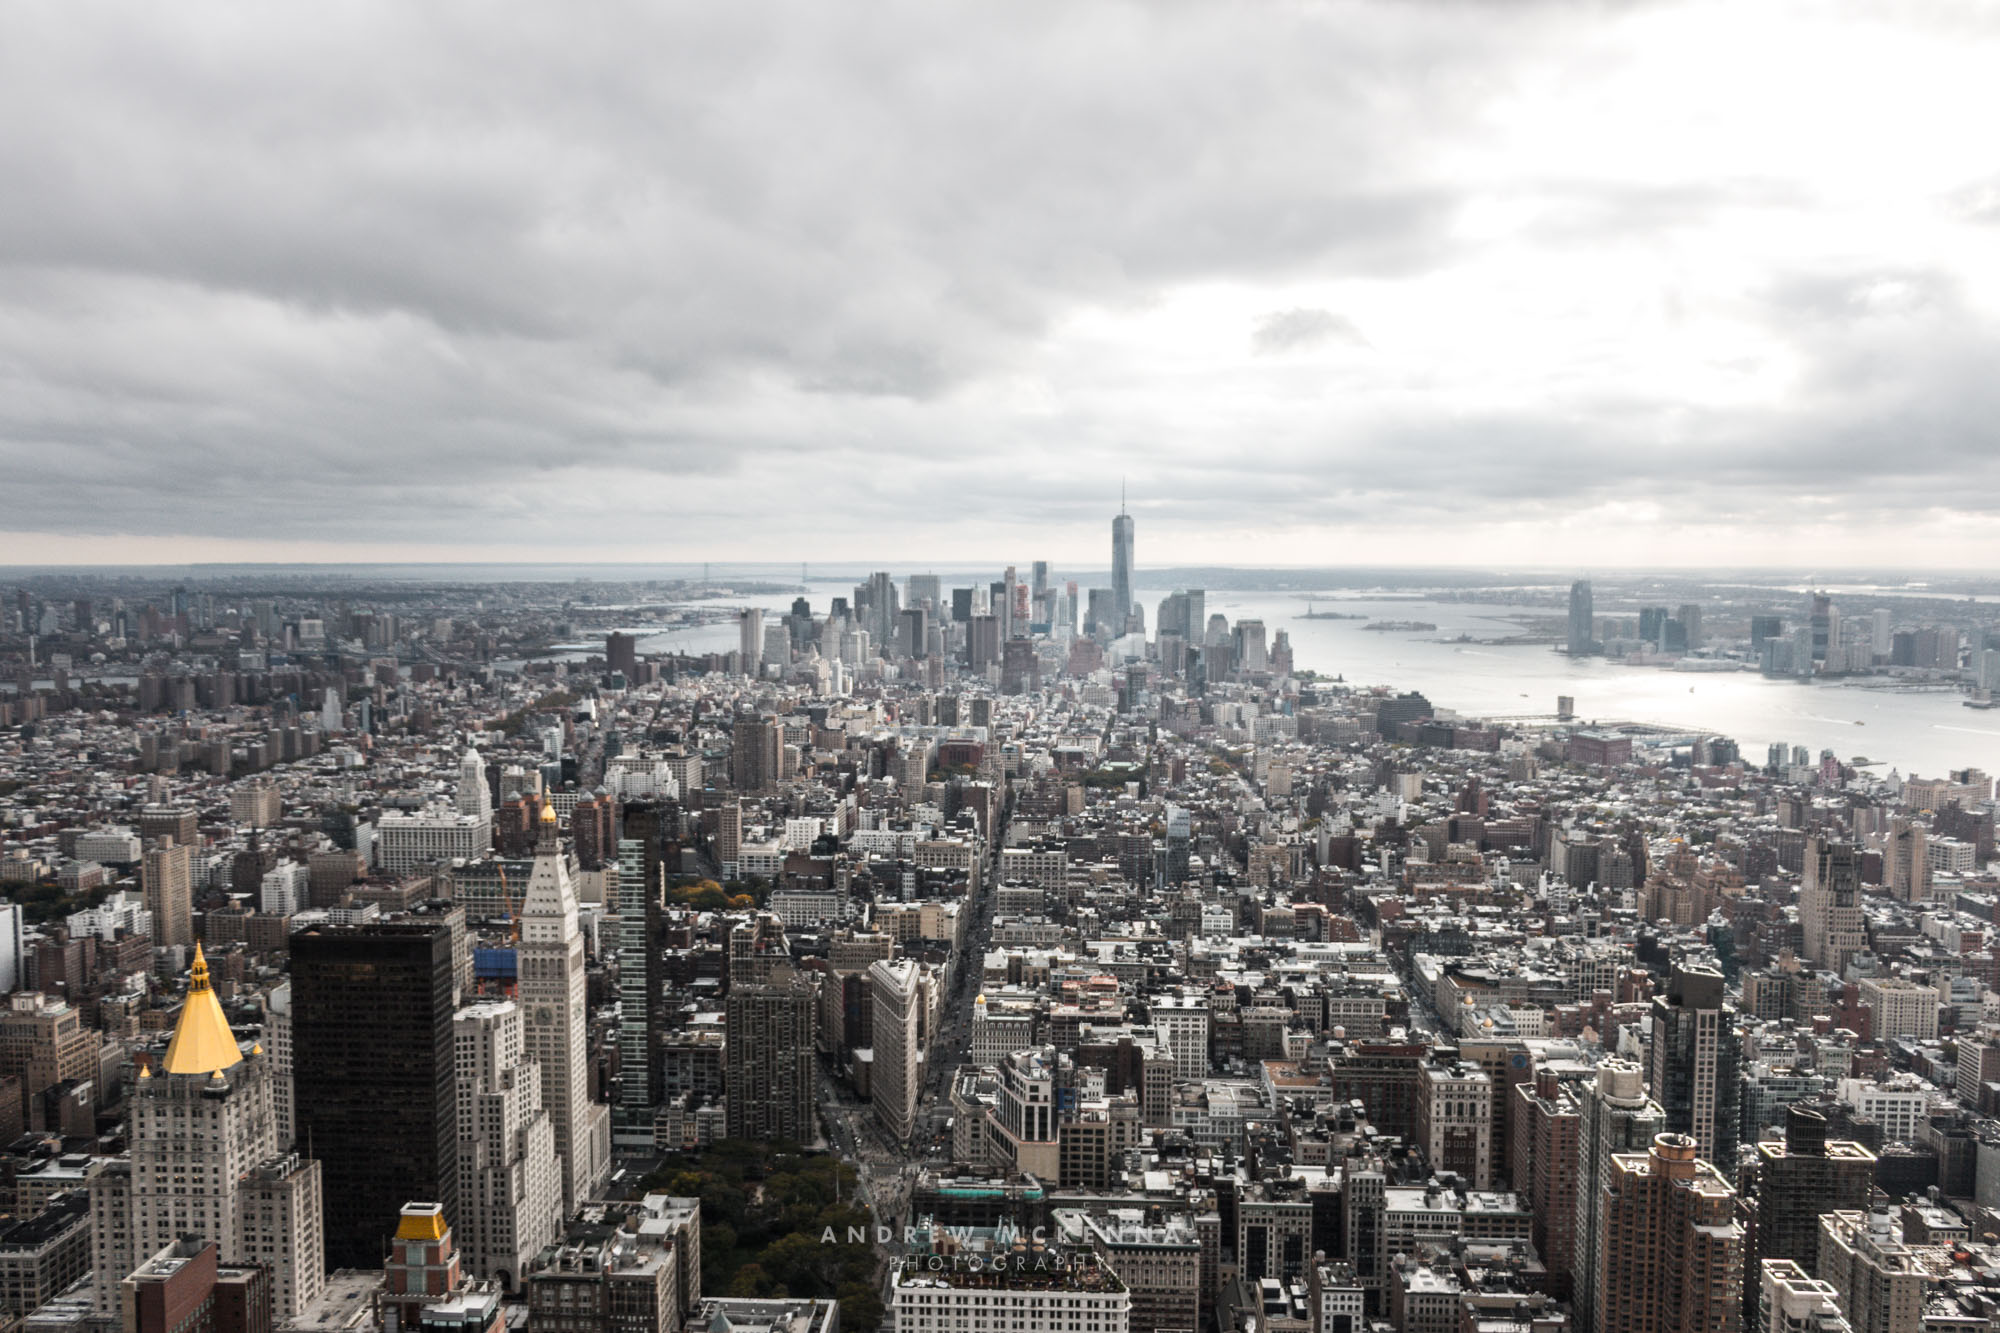 New York NYC Photographer Travel photographer Skyline